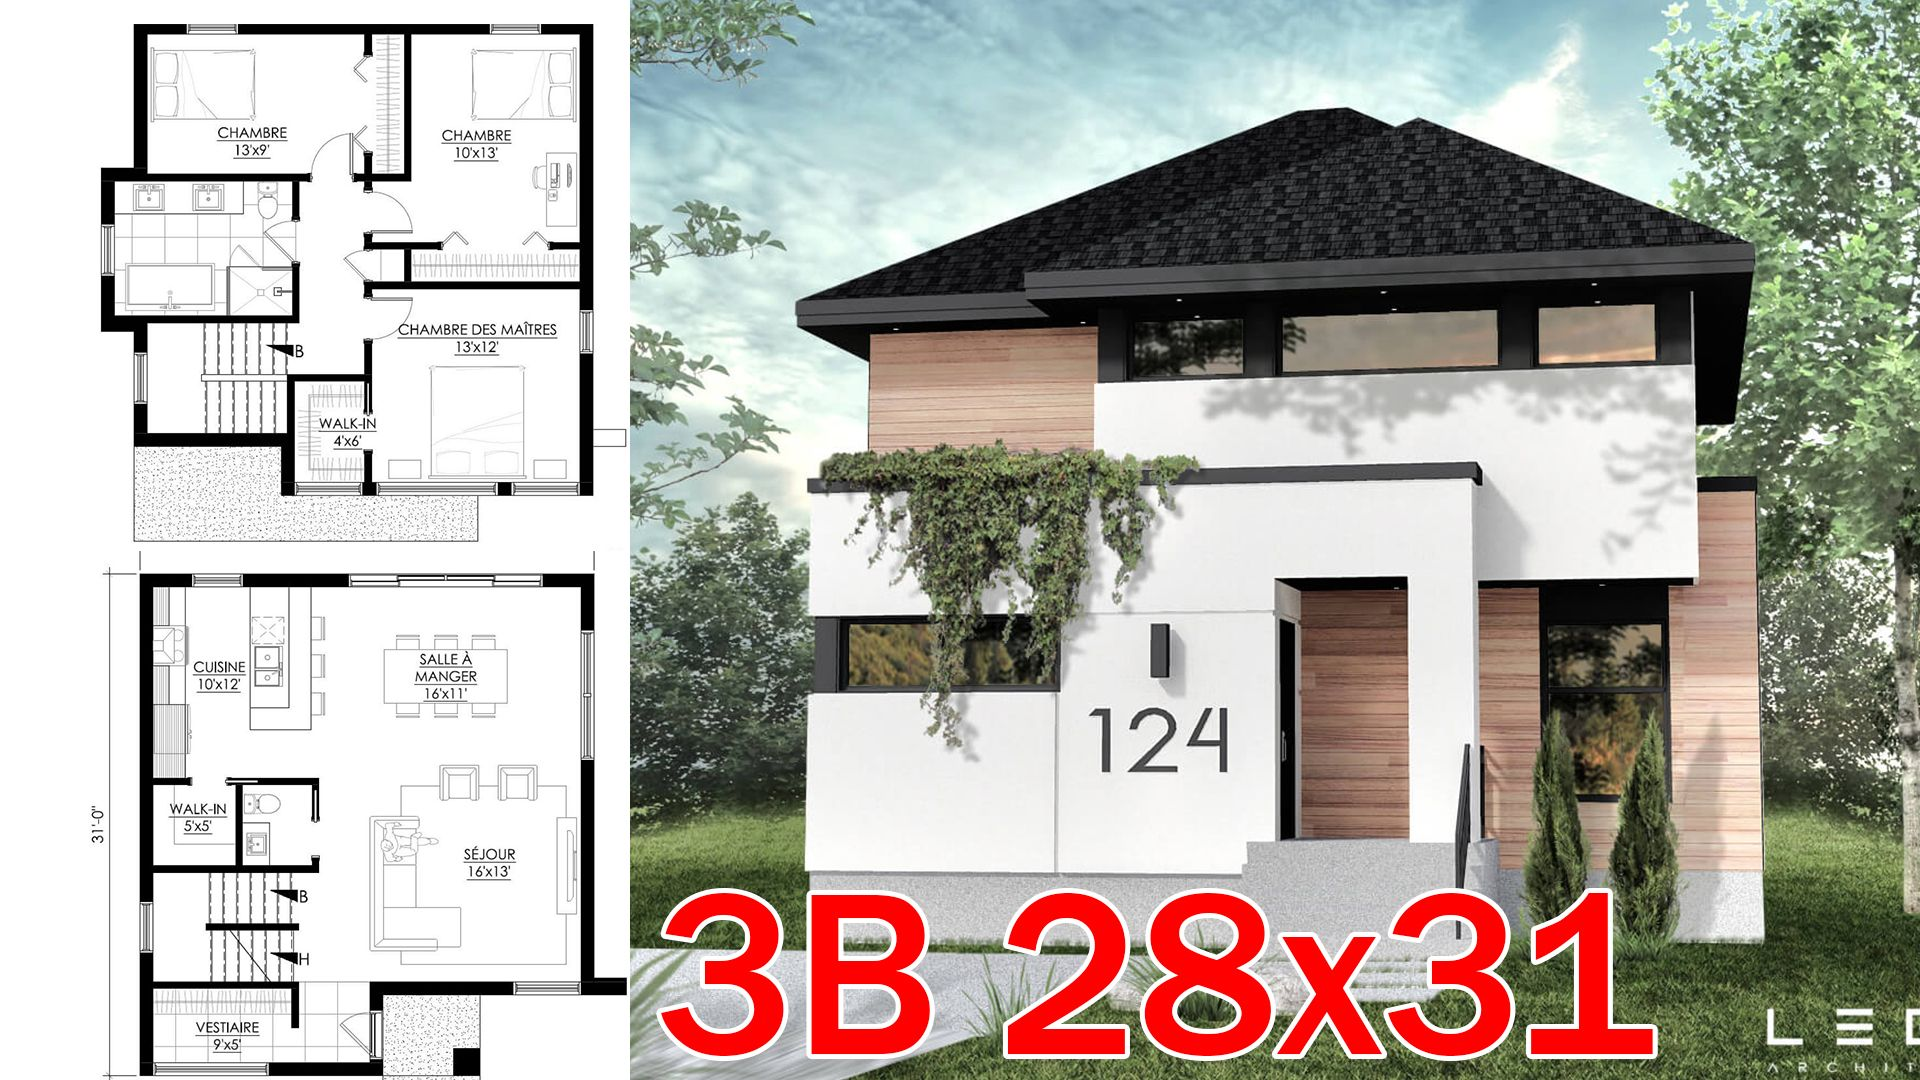 Modern house boutique 28x31ft | Small modern home, Small house ...